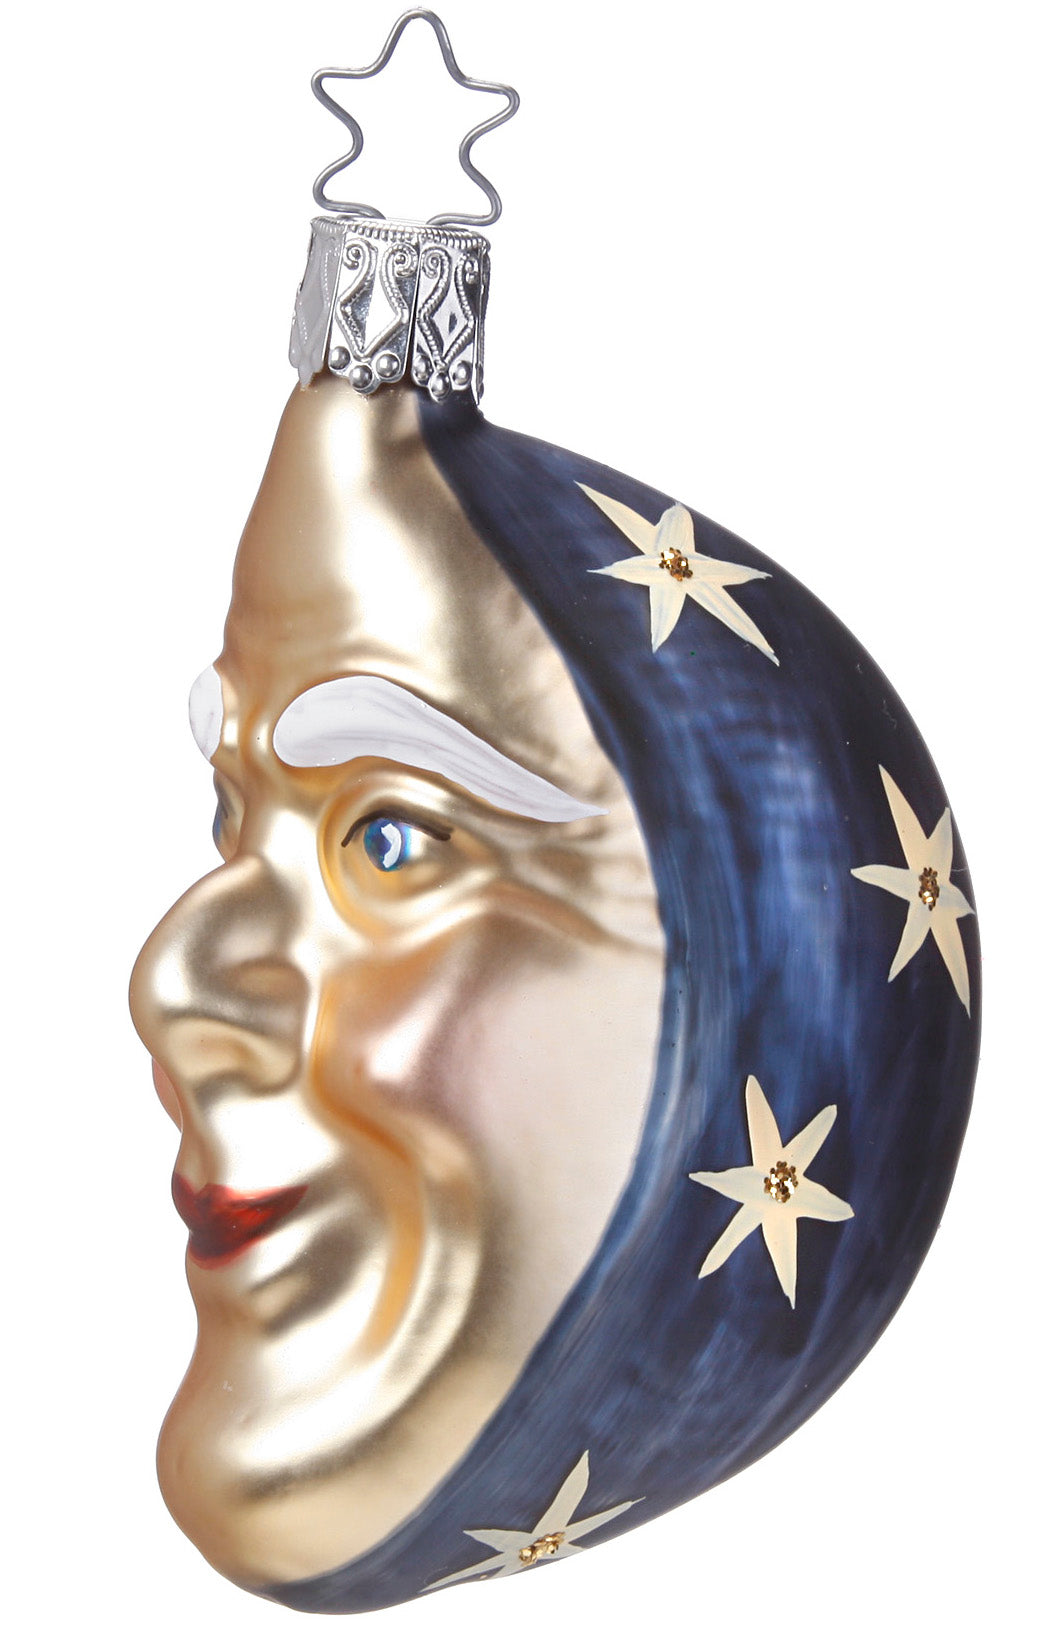 Ol' Blue Moon Christmas Ornament, Man in the Moon Ornaments